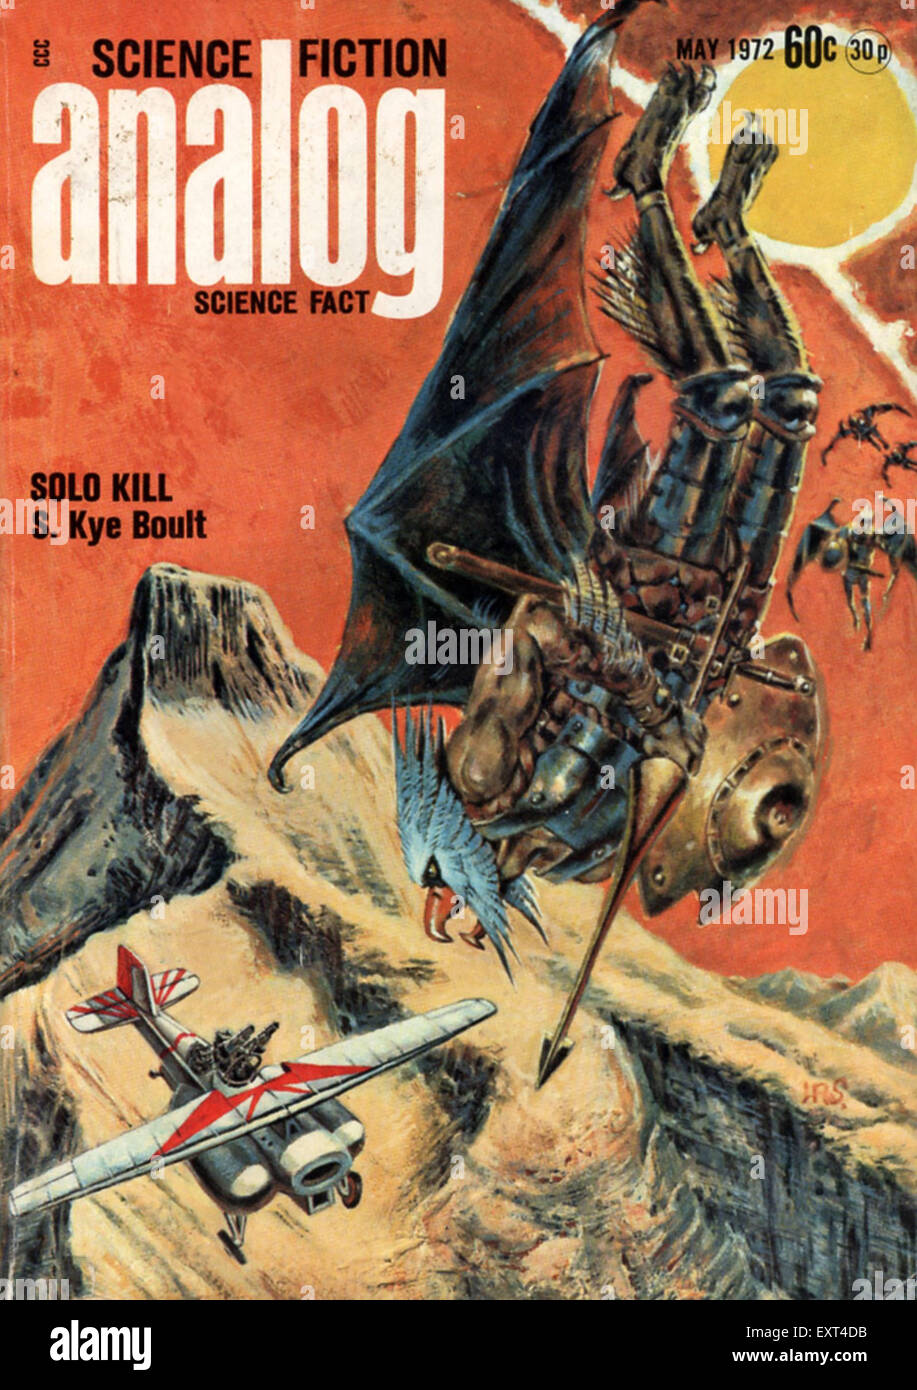 1960s UK Analog Magazine Cover - Stock Image